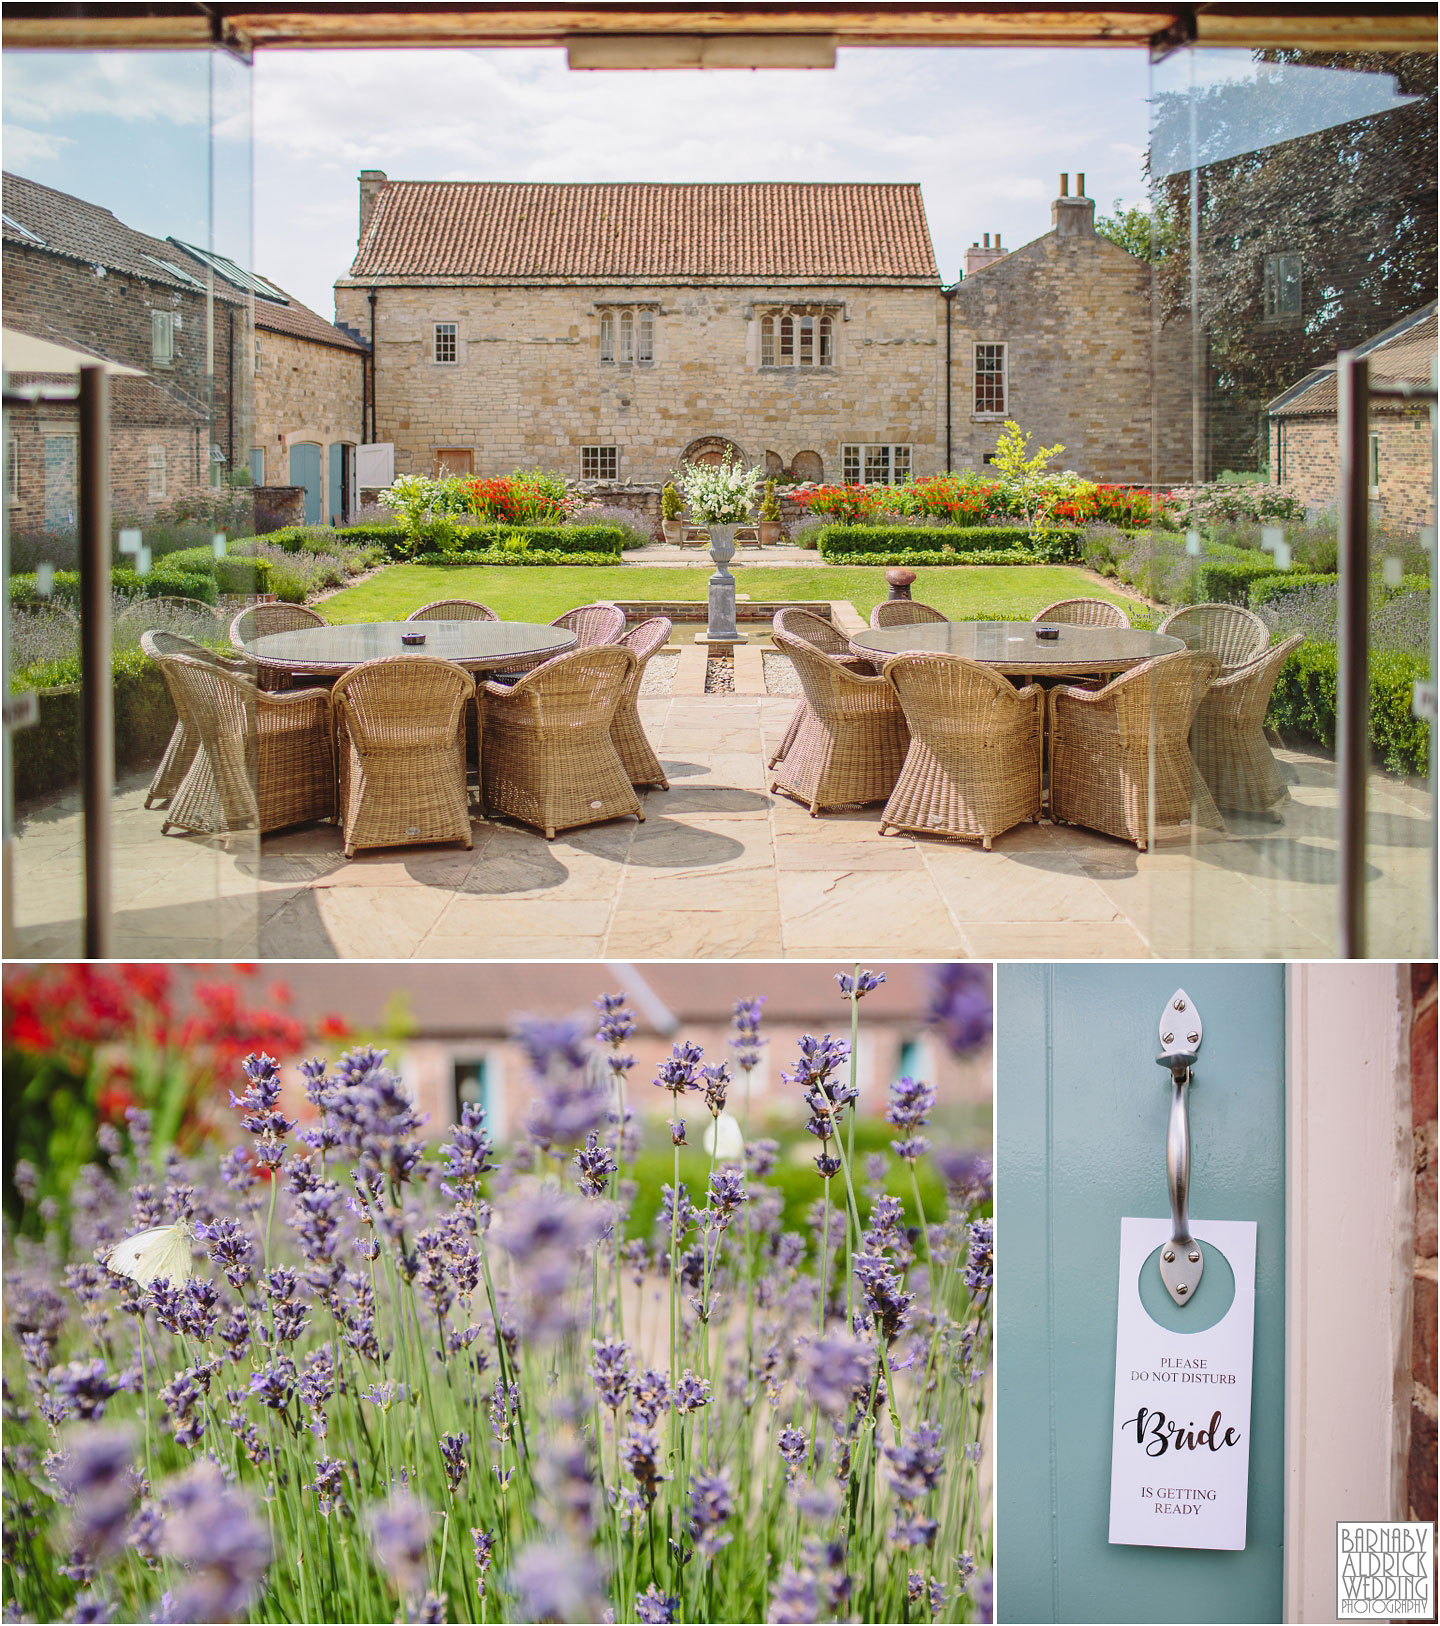 Priory Cottages barn venue near Wetherby in Yorkshire